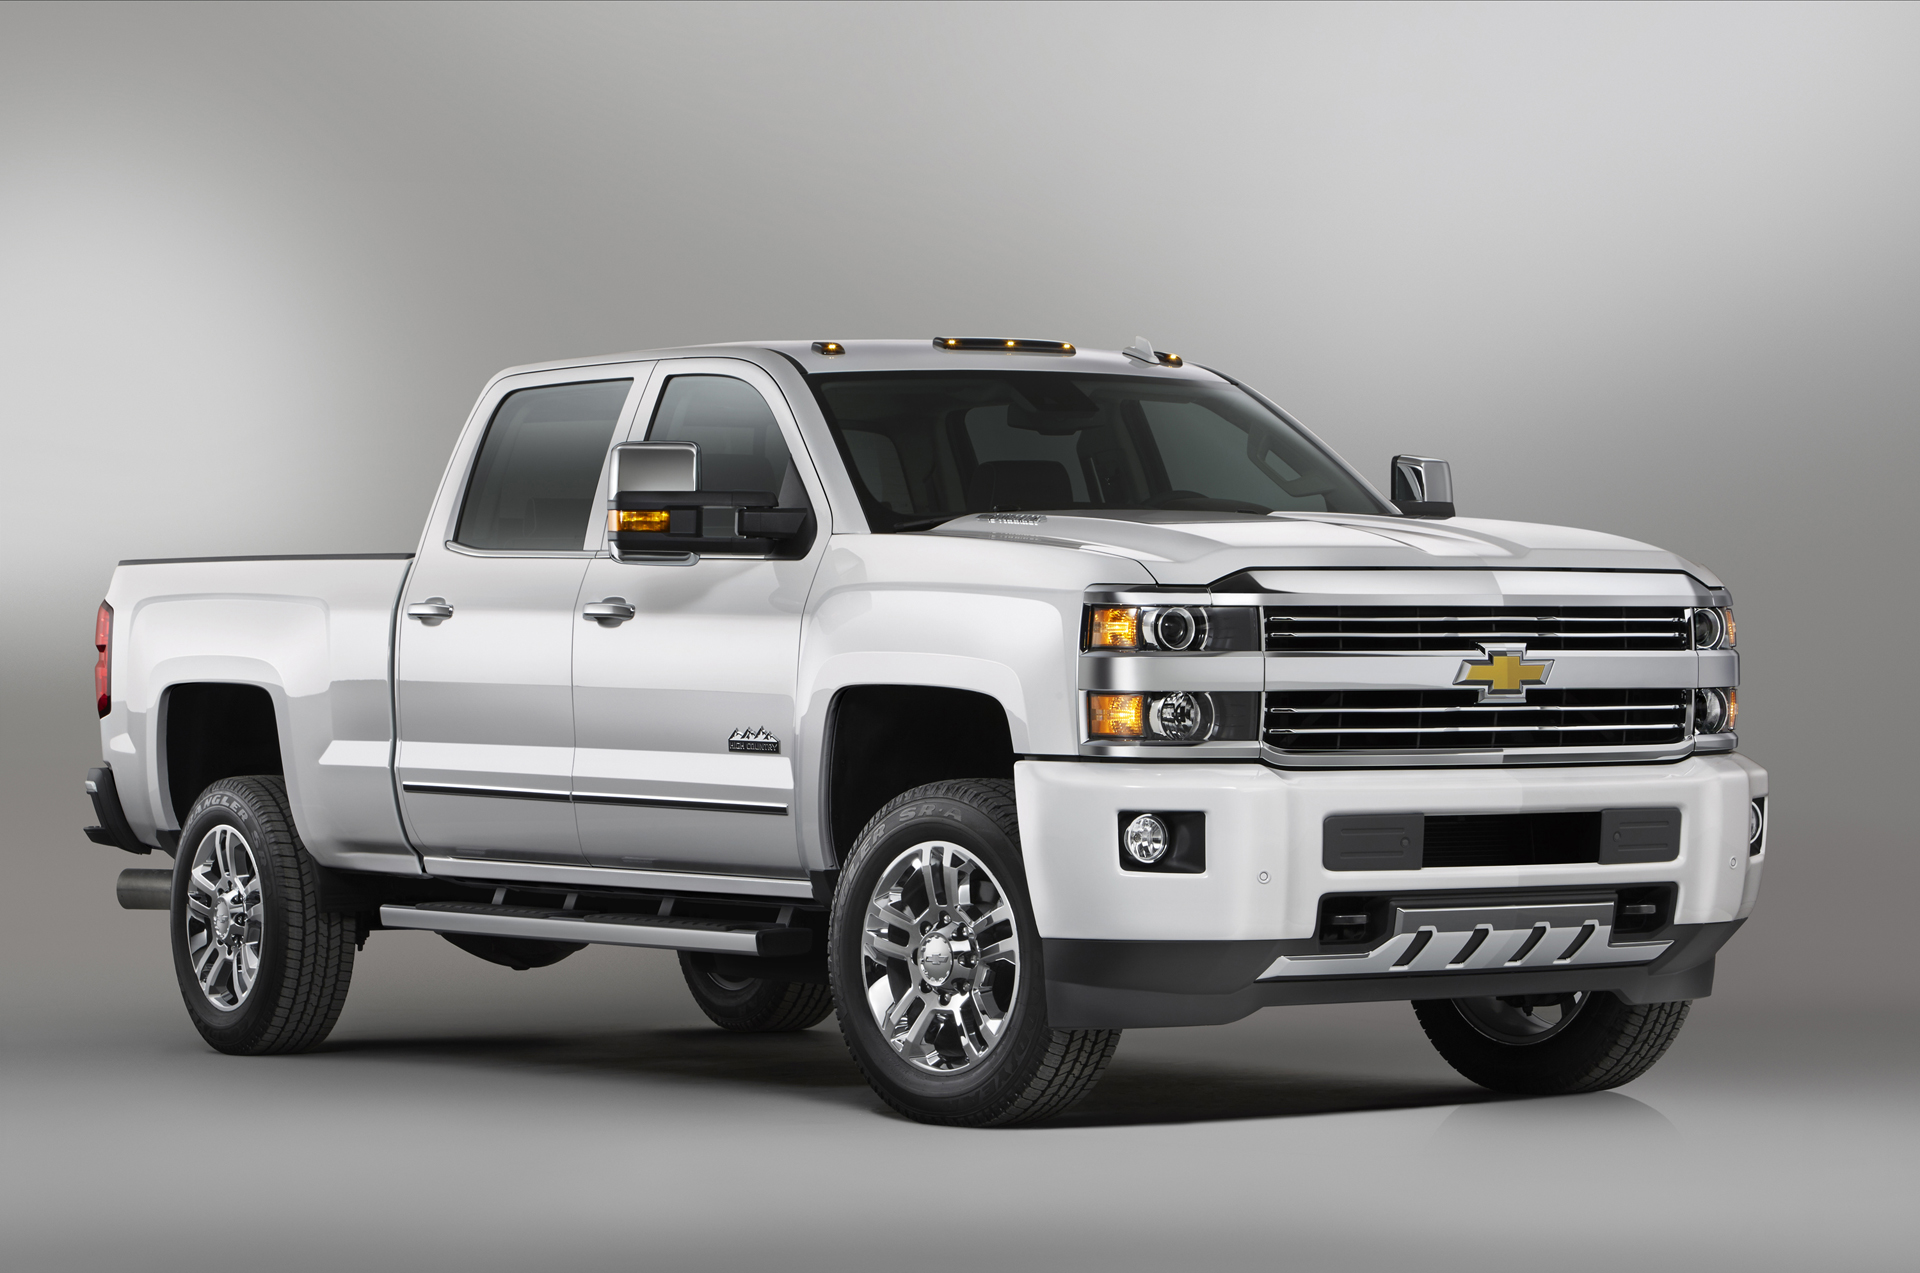 2015 chevrolet silverado 2500hd 100463249. Black Bedroom Furniture Sets. Home Design Ideas